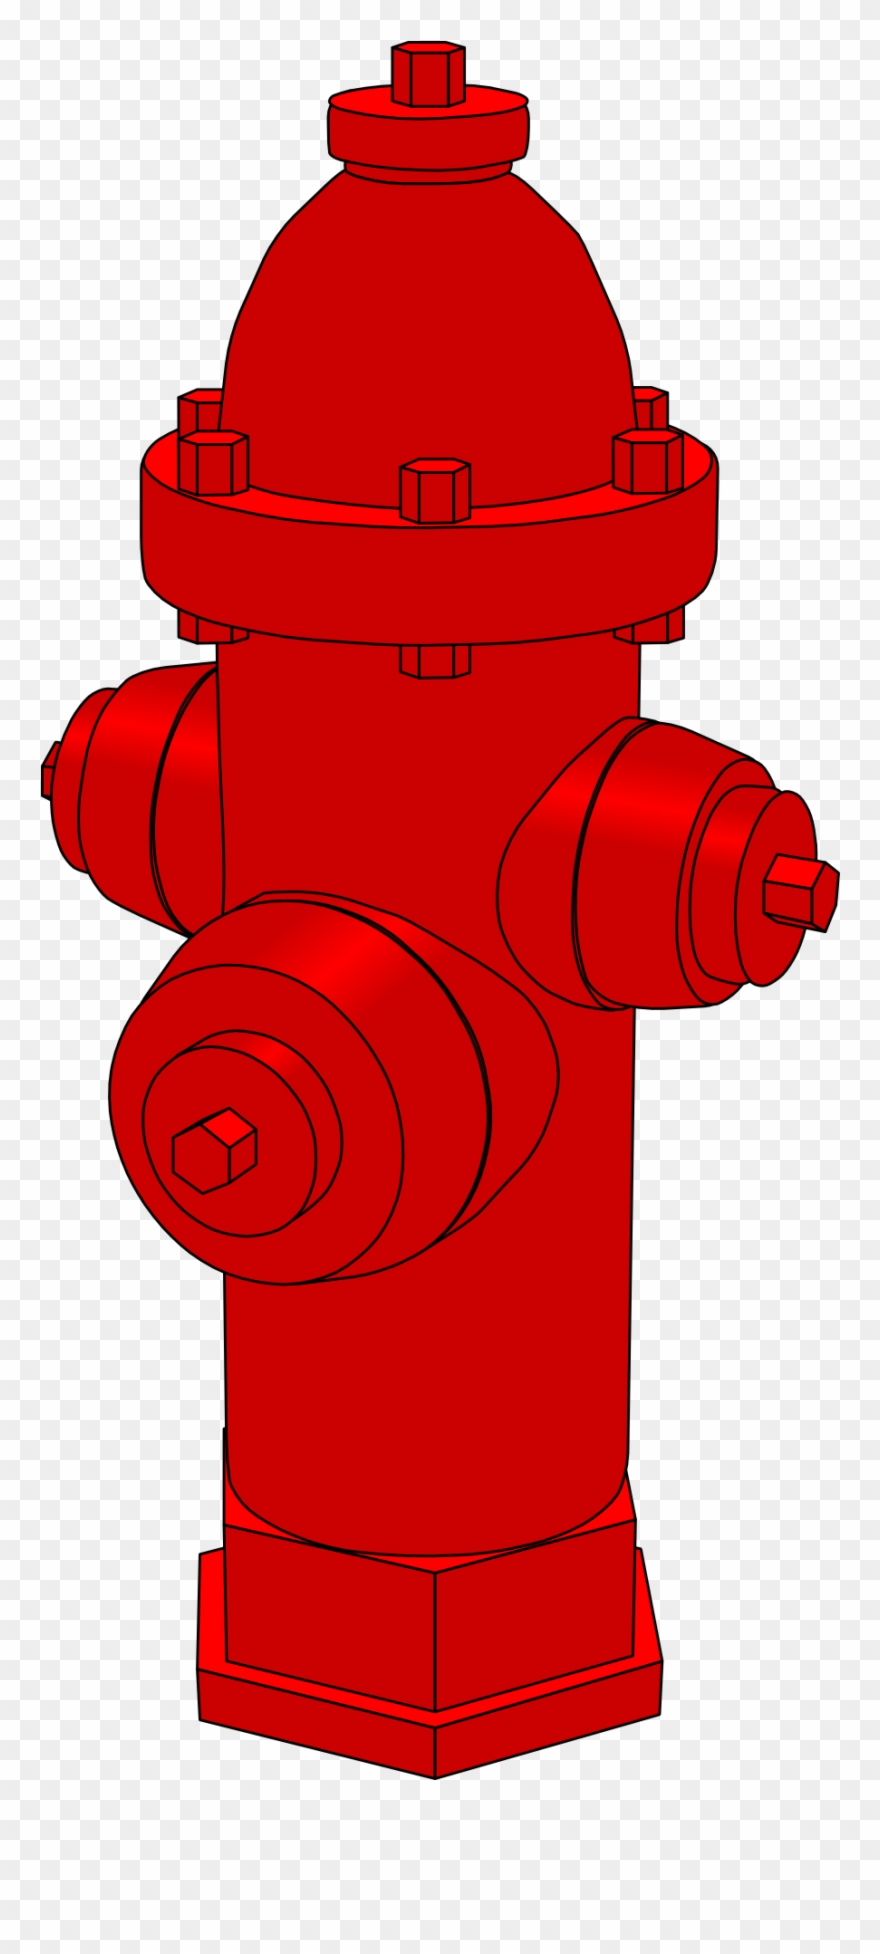 medium resolution of fire hydrant fire hydrant png clip art transparent png